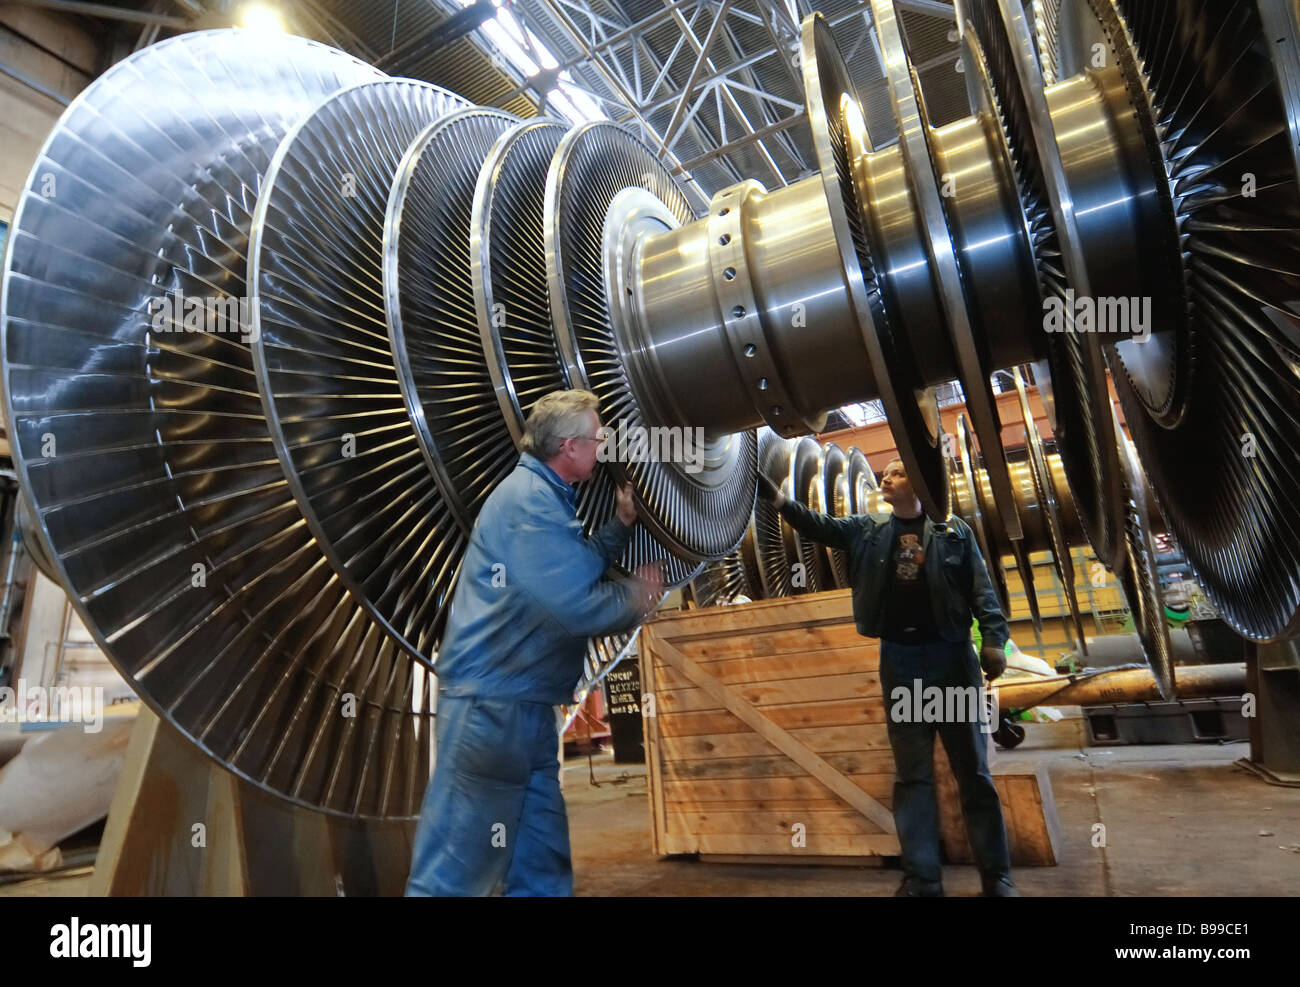 A turbine rotor assembly and balancing area - Stock Image